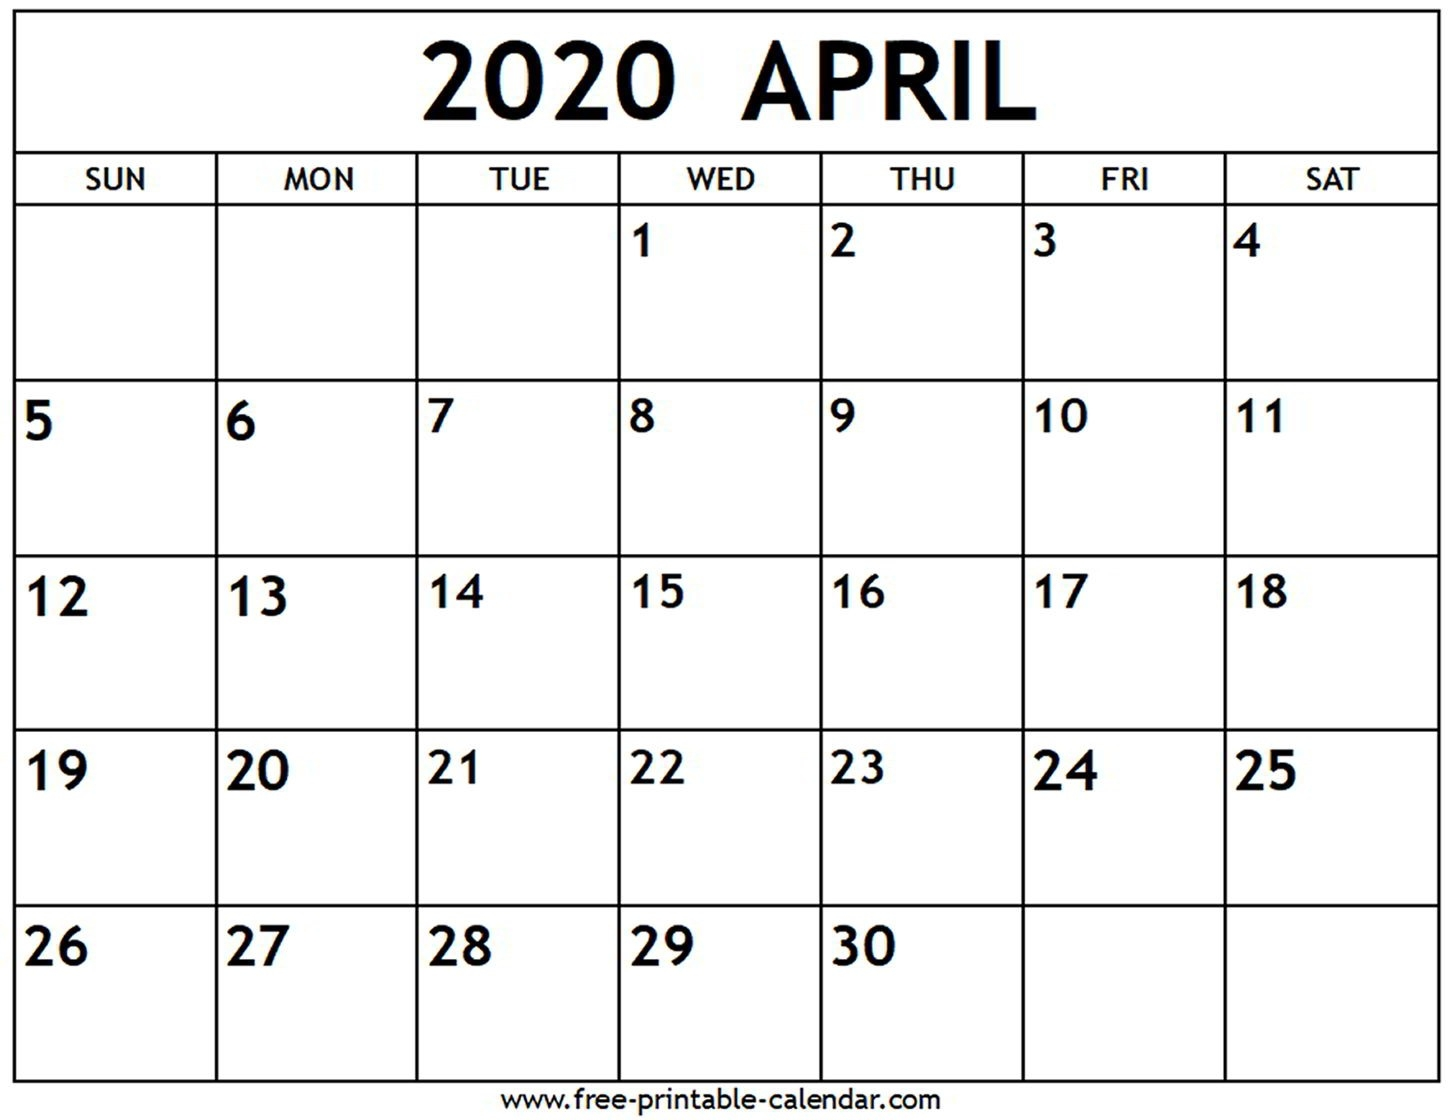 April 2020 Calendar - Free-Printable-Calendar-Blank 2020 Calendar Uk Printable